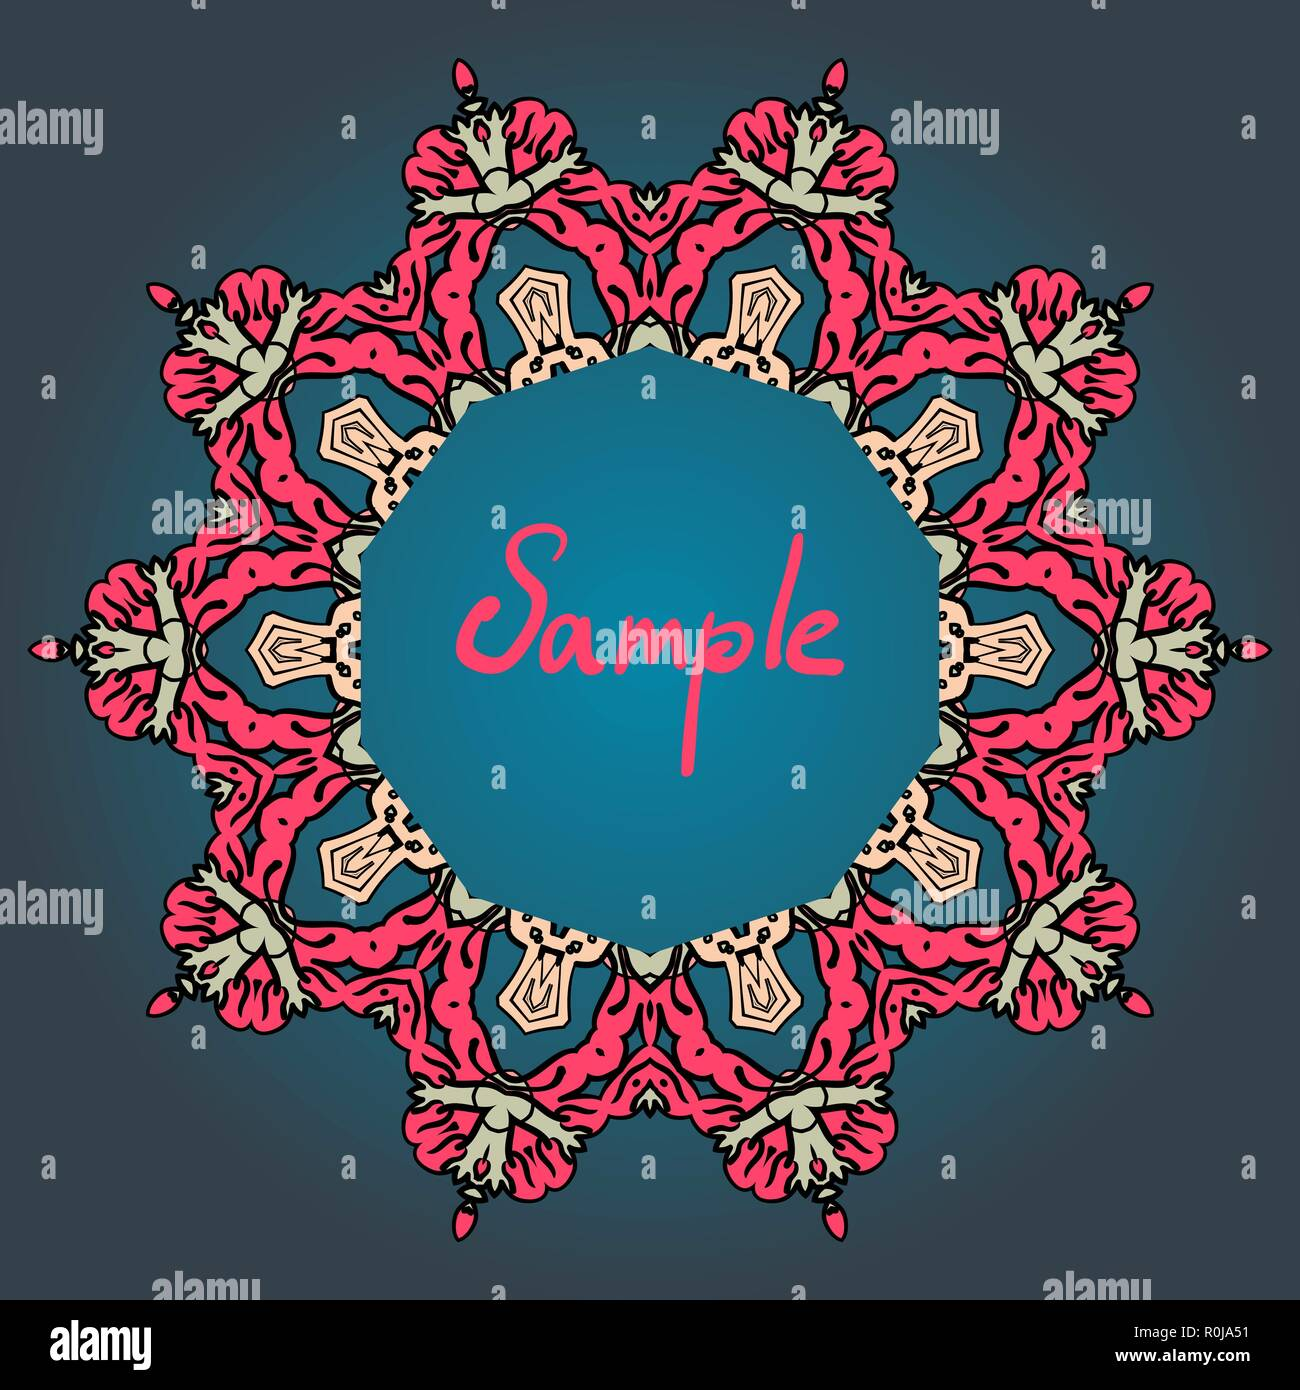 Stylized mandala frame with place for text. Red and blue color. - Stock Image